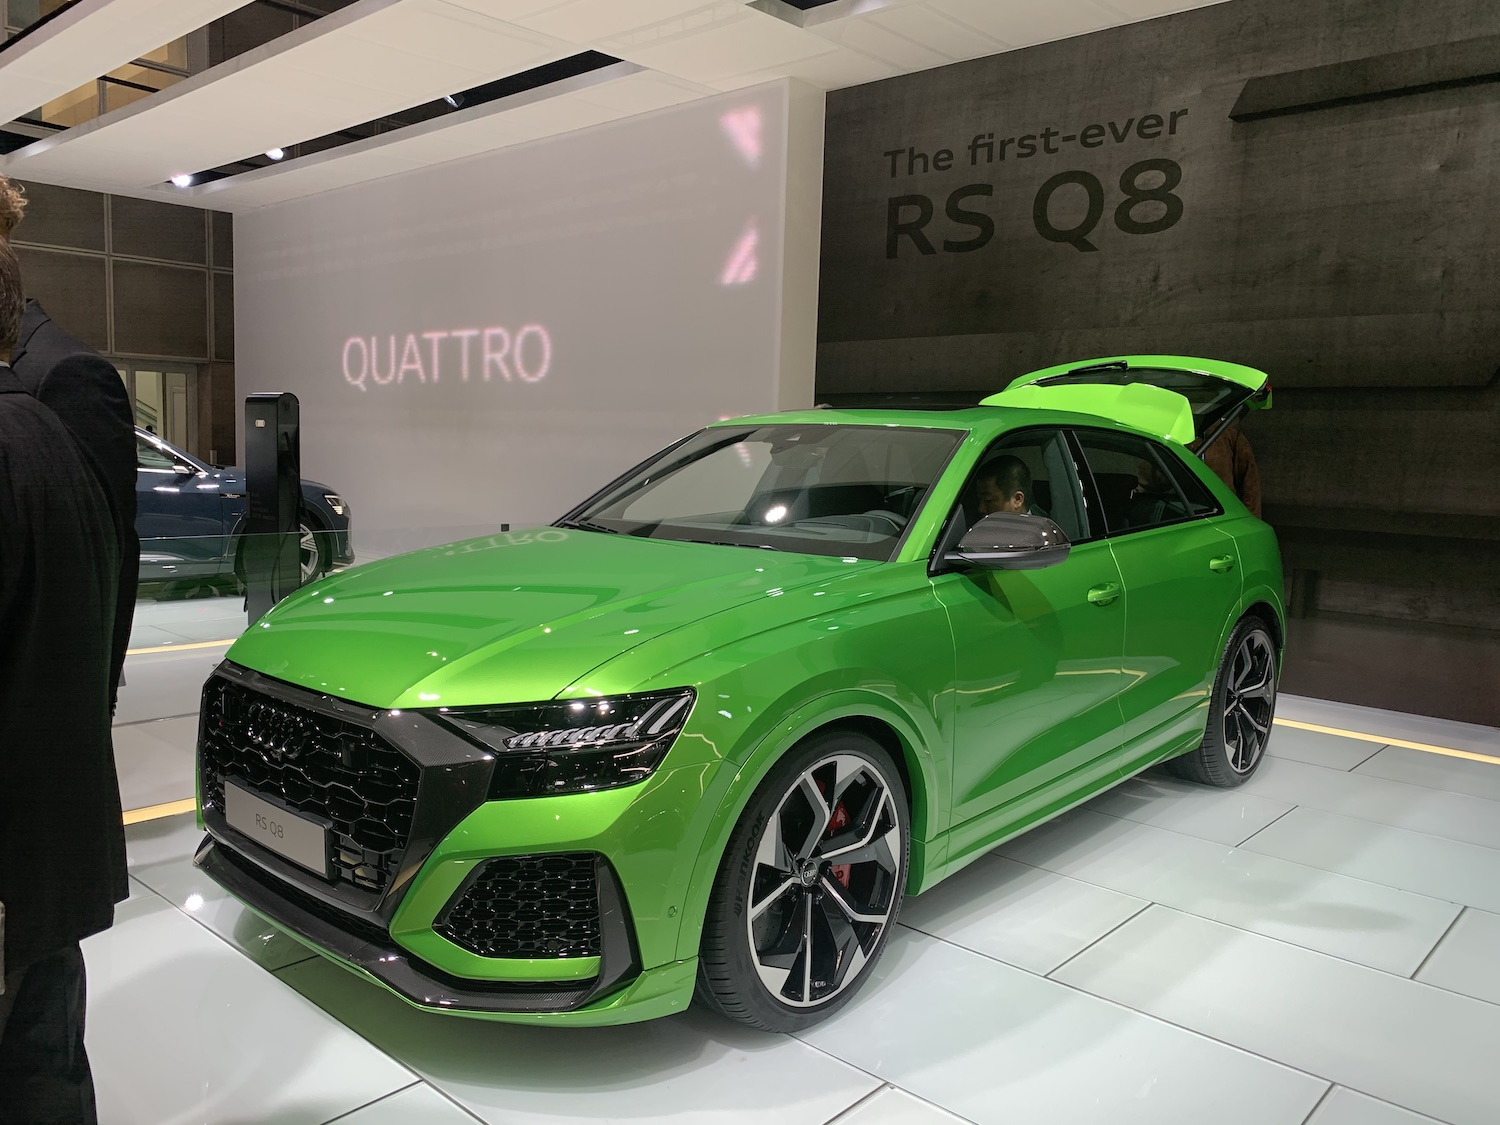 RS Q8 front three quarter